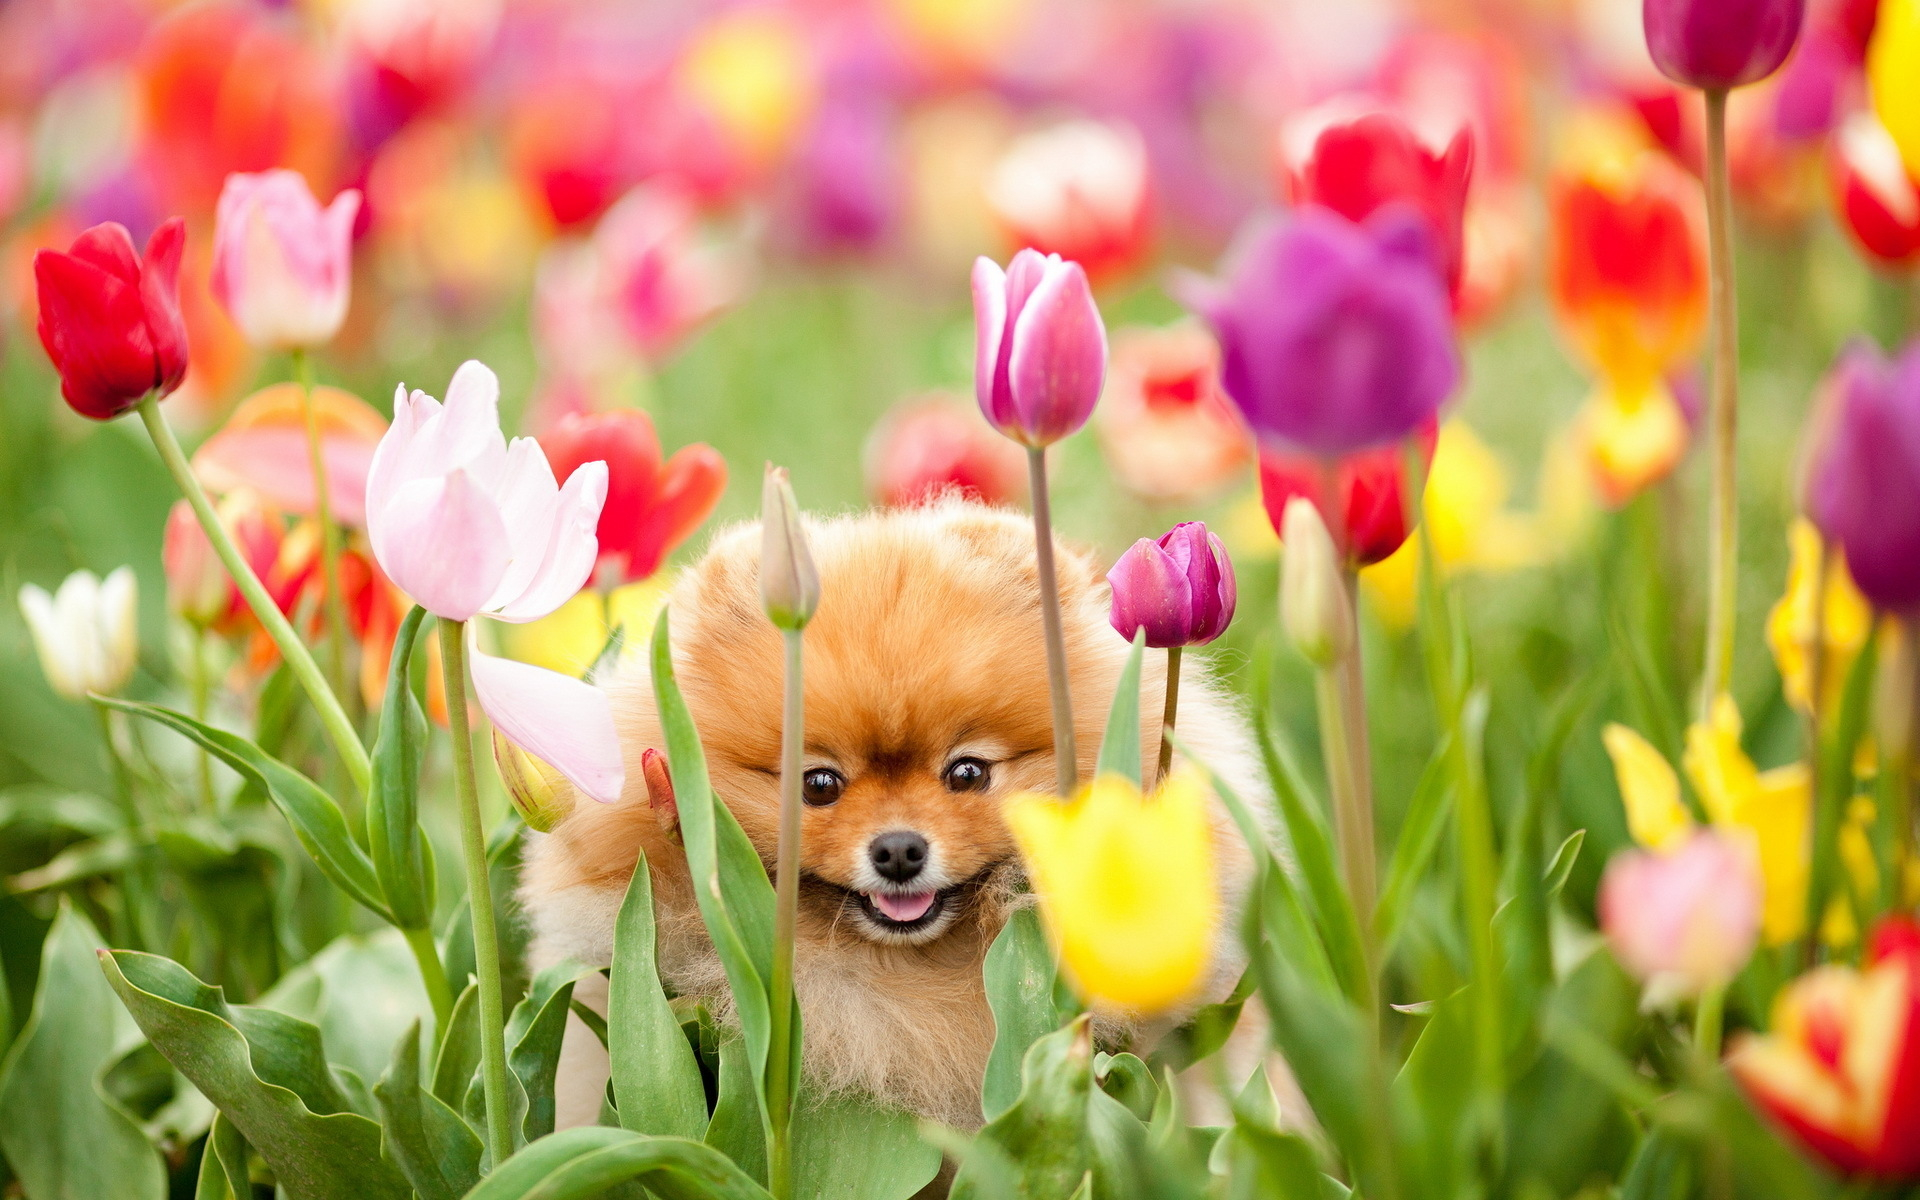 Dog and tulips wallpapers and images   wallpapers pictures photos 1920x1200